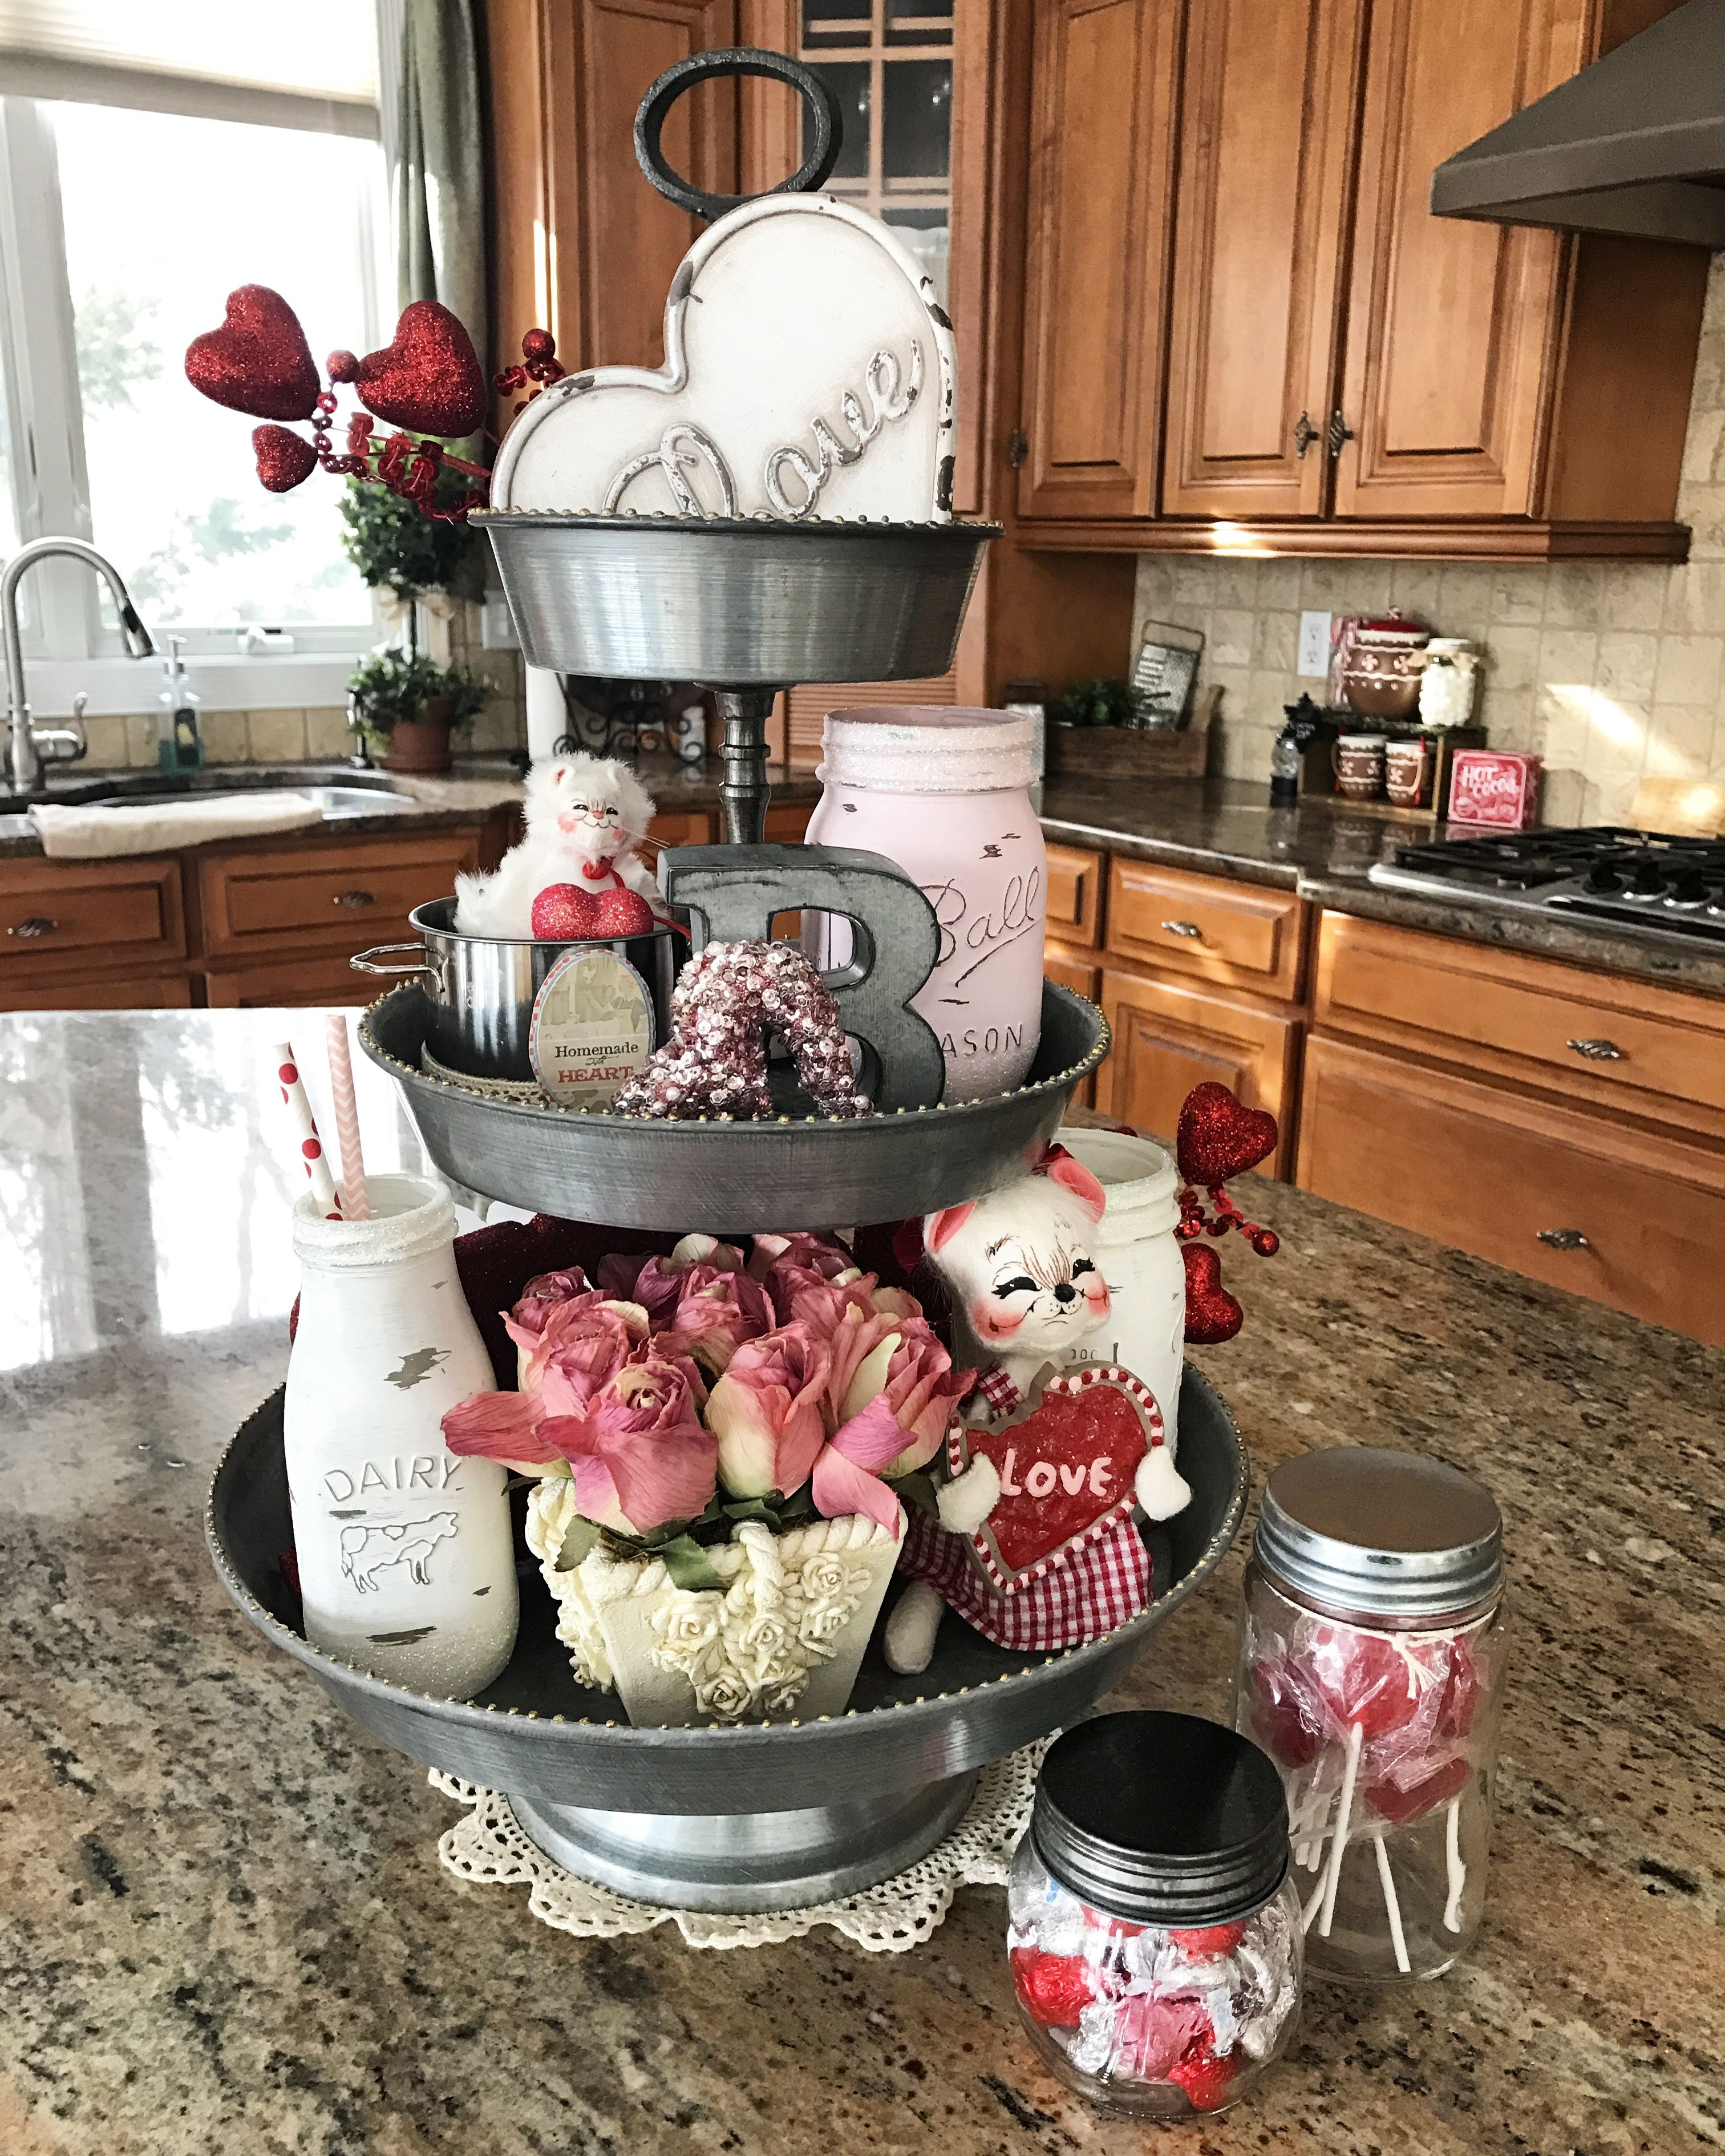 My Three Tier Tray In My Kitchen Decorated For Valentine S